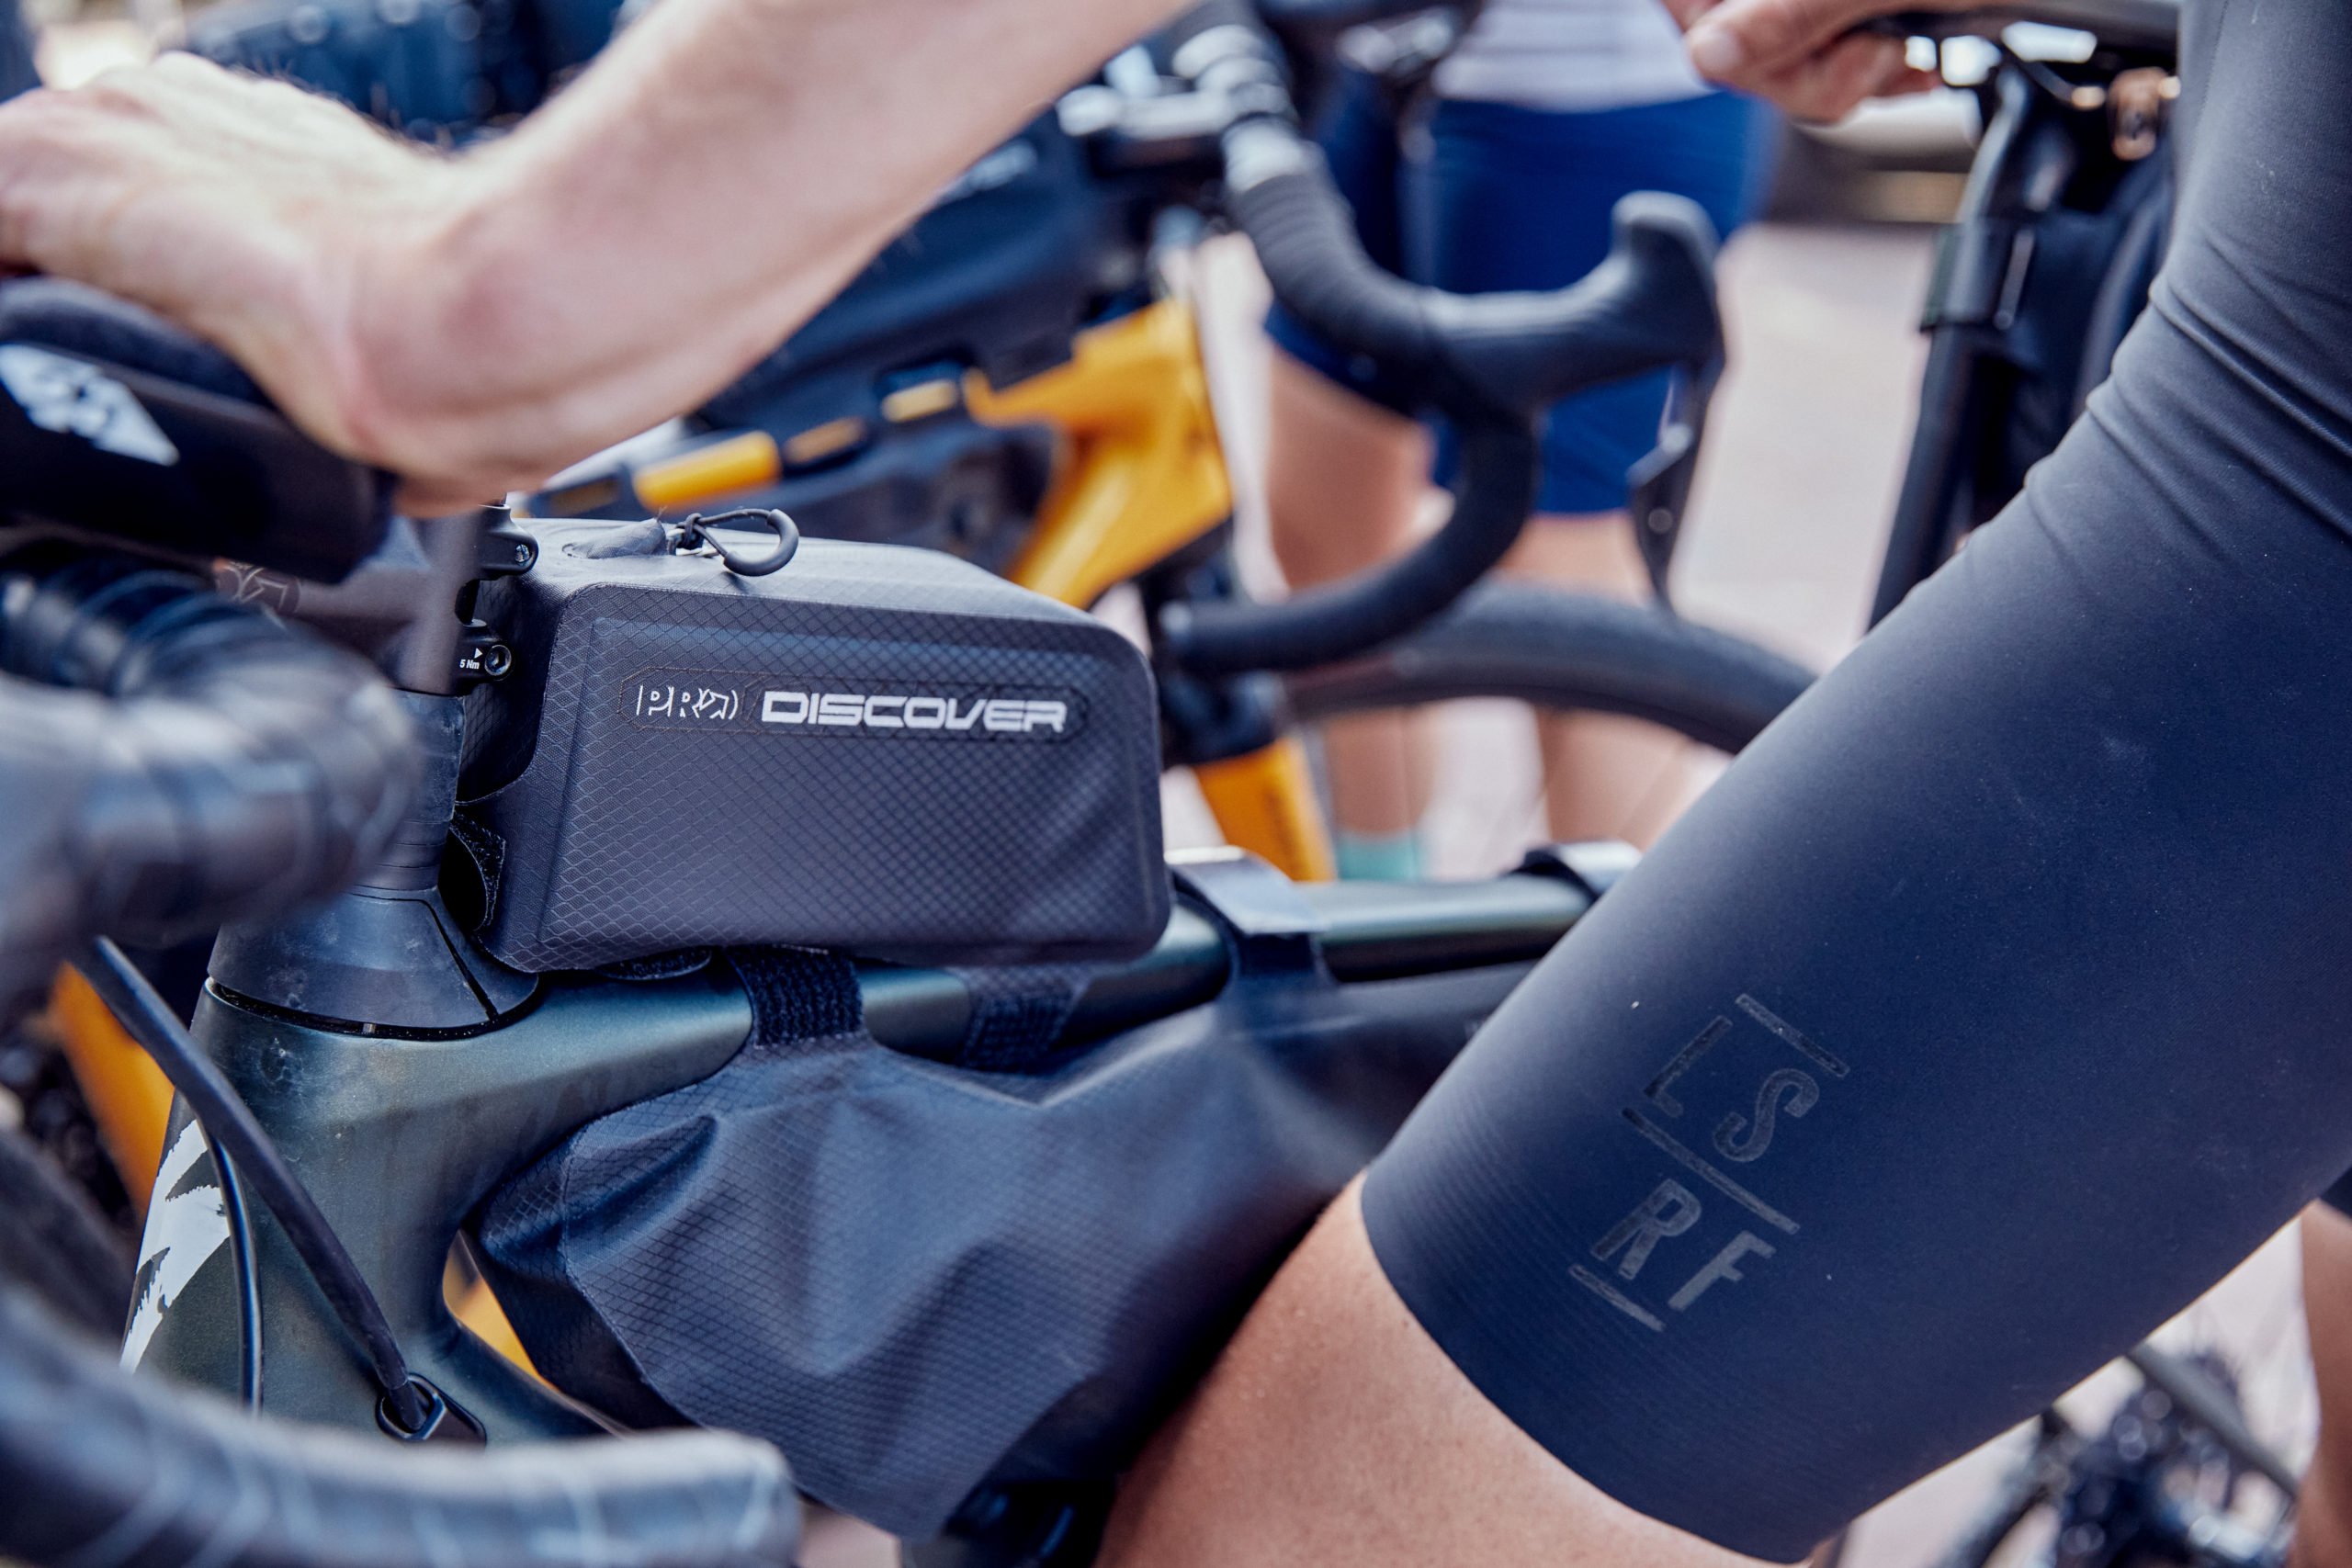 Shimano PRO Discover Team Bikepacking Bags